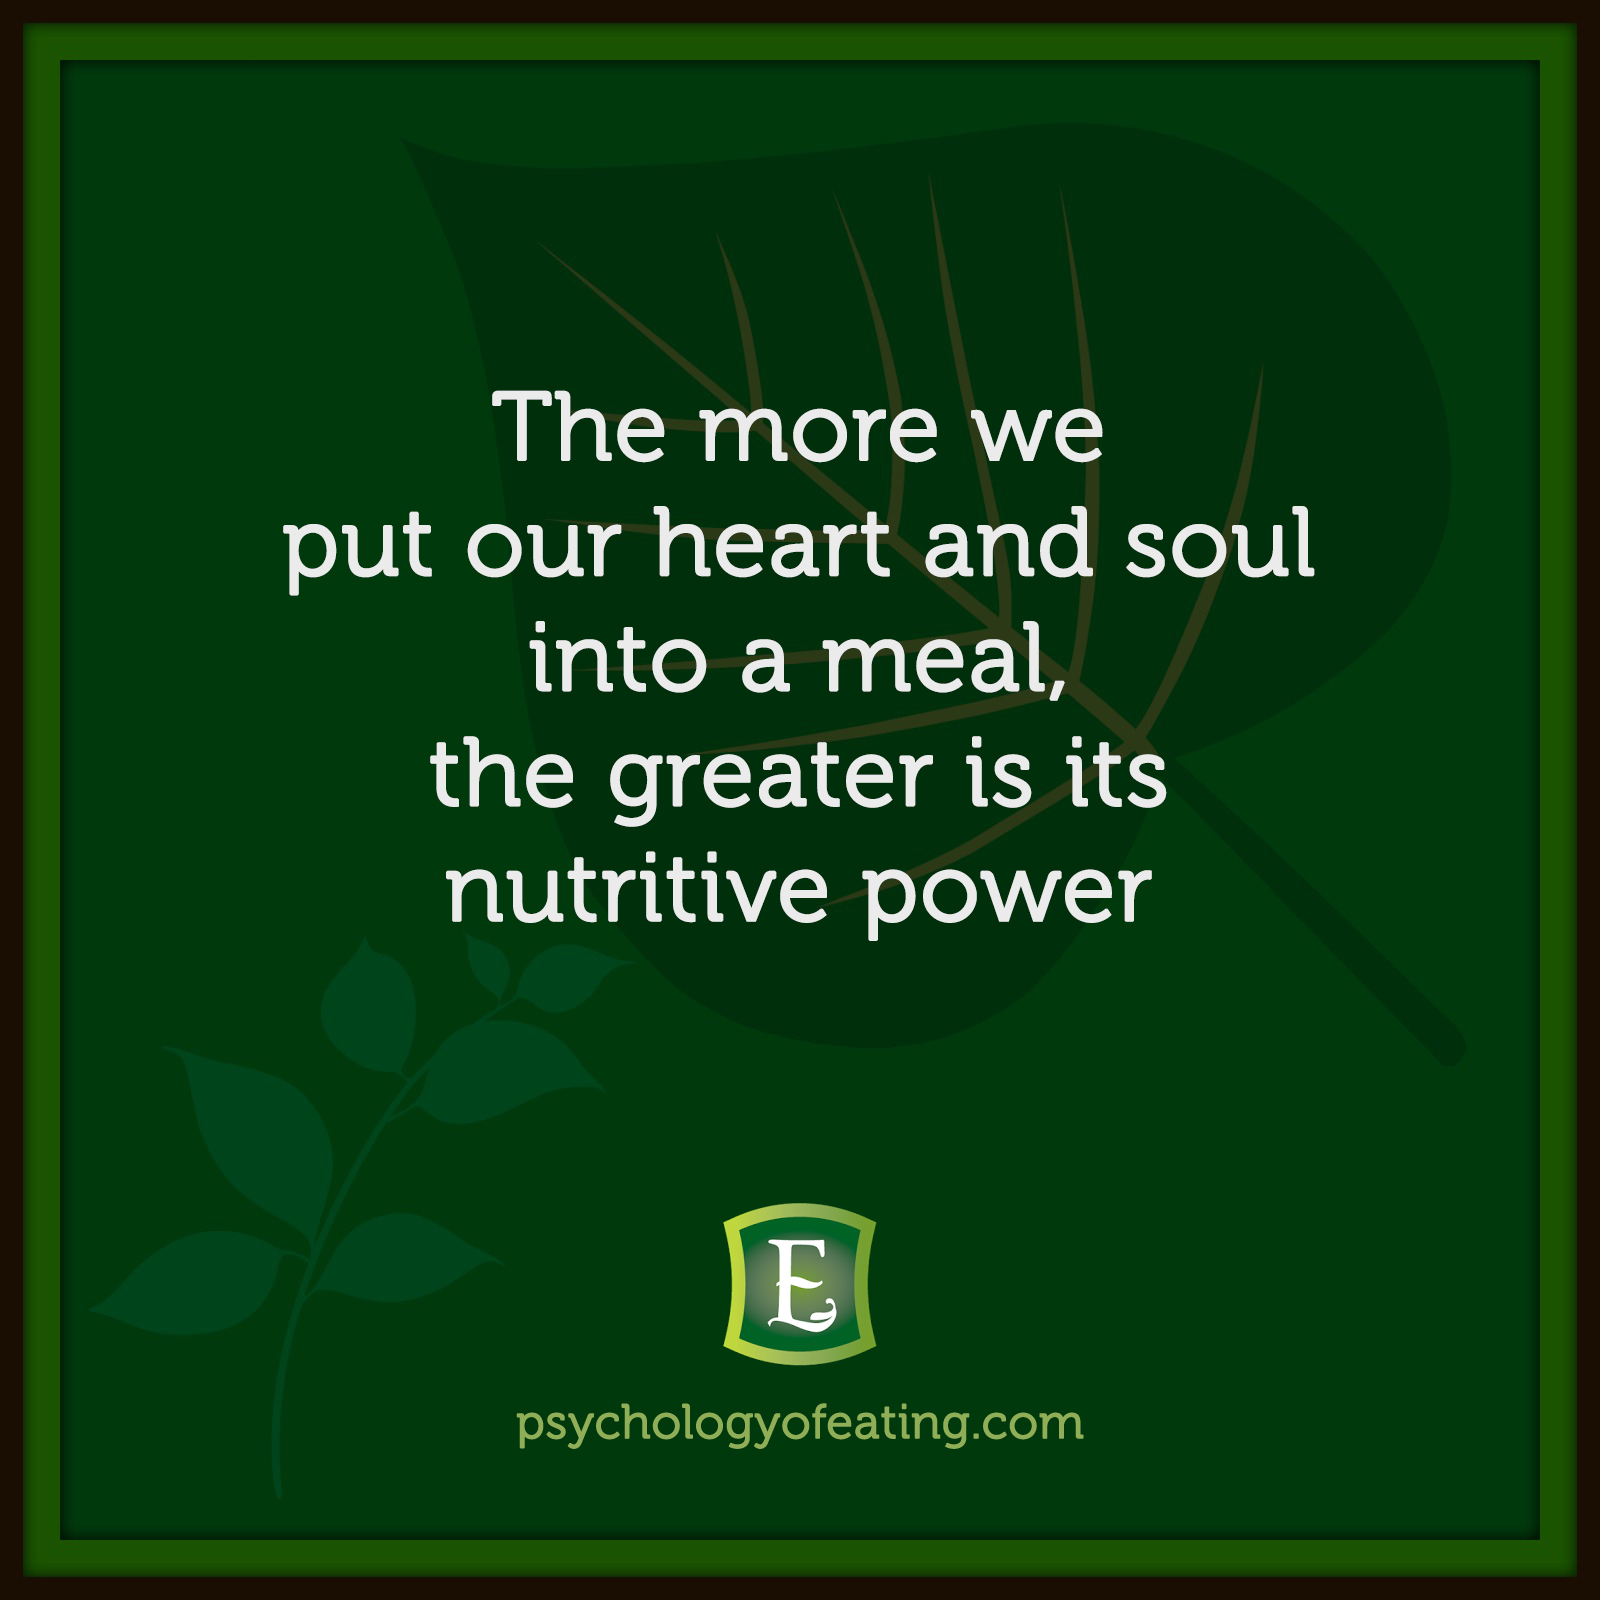 The more we put our heart and soul into a meal, the greater is its nutritive power #health #nutrition #eatingpsychology #IPE